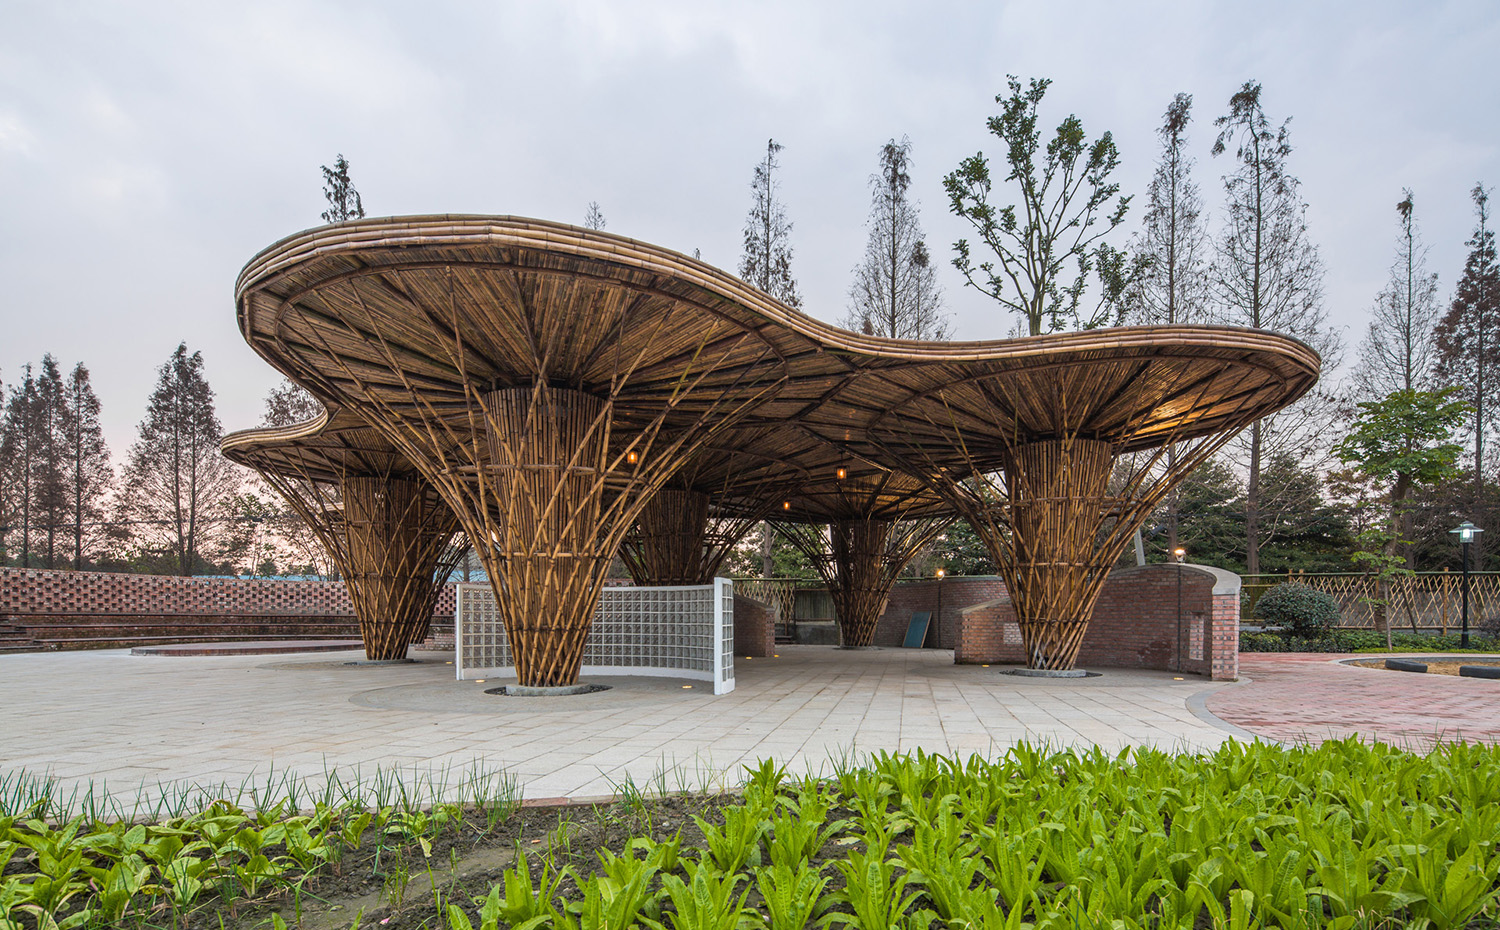 02.umbrella-shaped bamboo structure( zs-studio). [03] Bambú